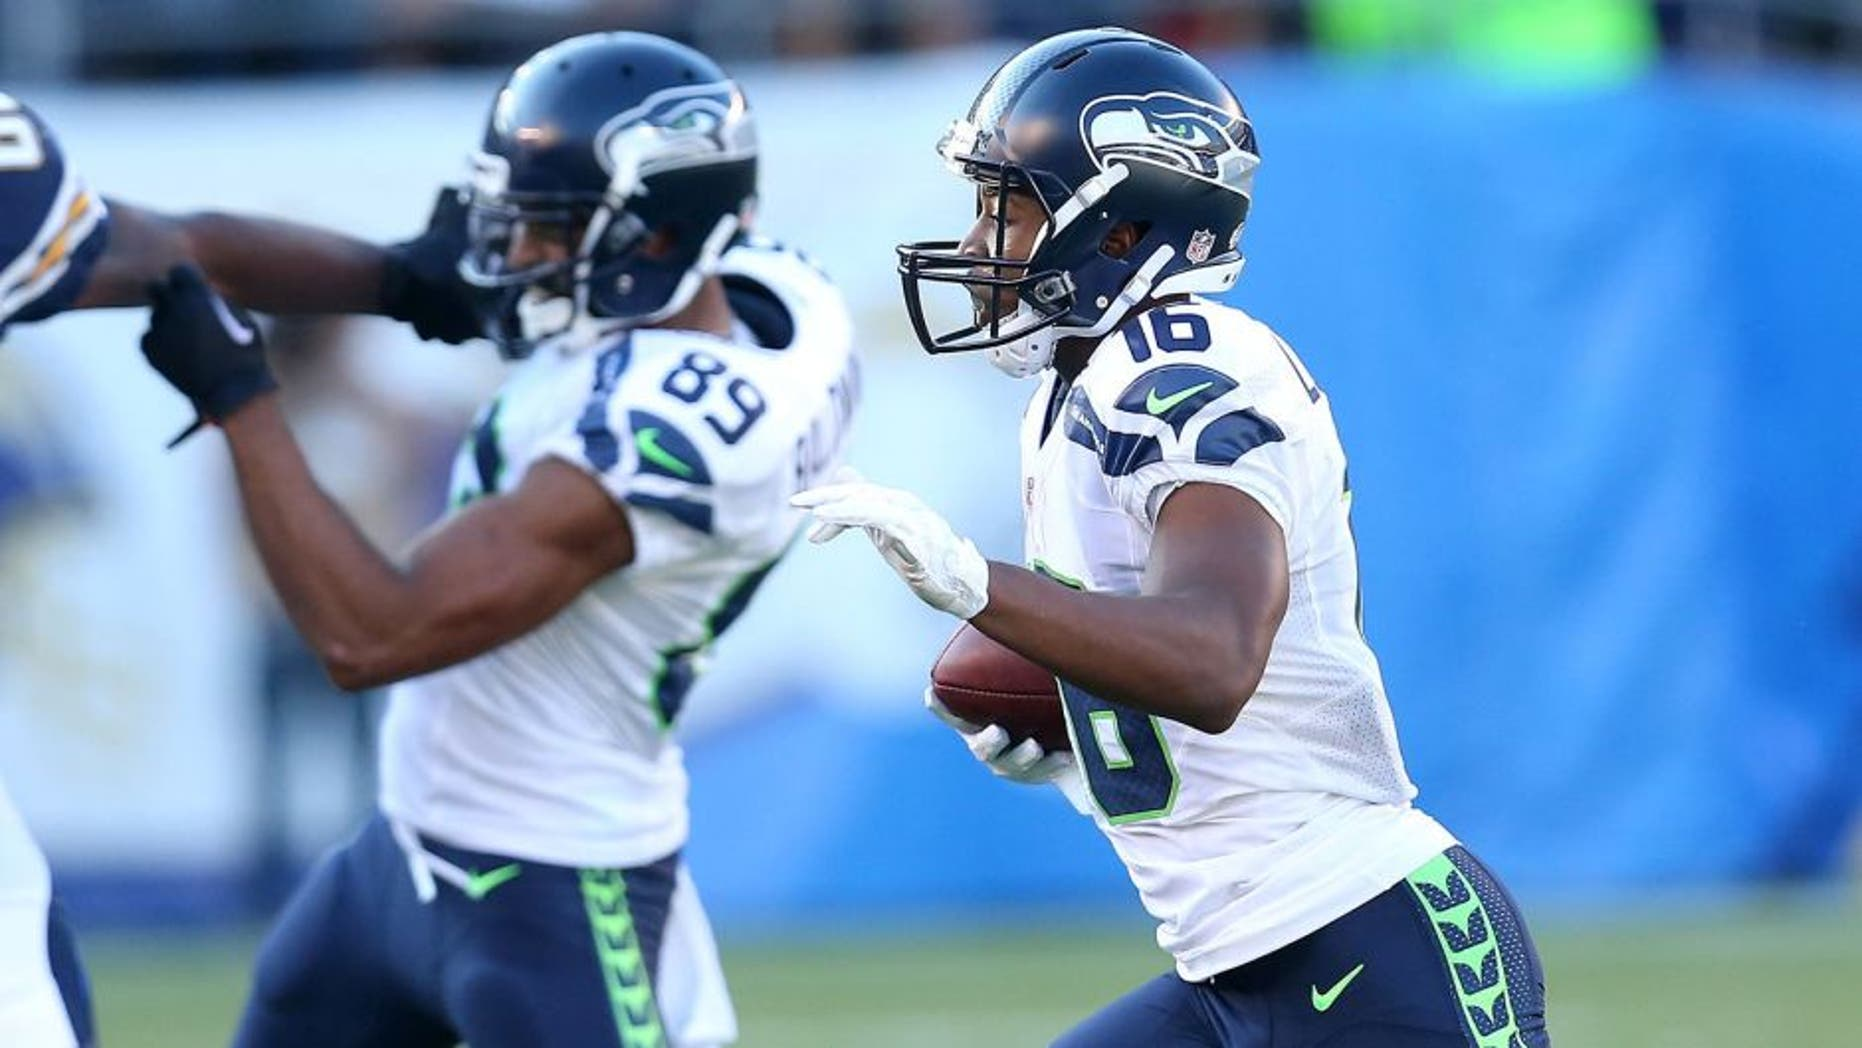 SAN DIEGO, CA - AUGUST 29: Tyler Lockett #16 of the Seattle Seahawks returns a punt 67 yards for a touchdown in the second quarter against the San Diego Chargers during preseason at Qualcomm Stadium on August 29, 2015 in San Diego, California. (Photo by Stephen Dunn/Getty Images)